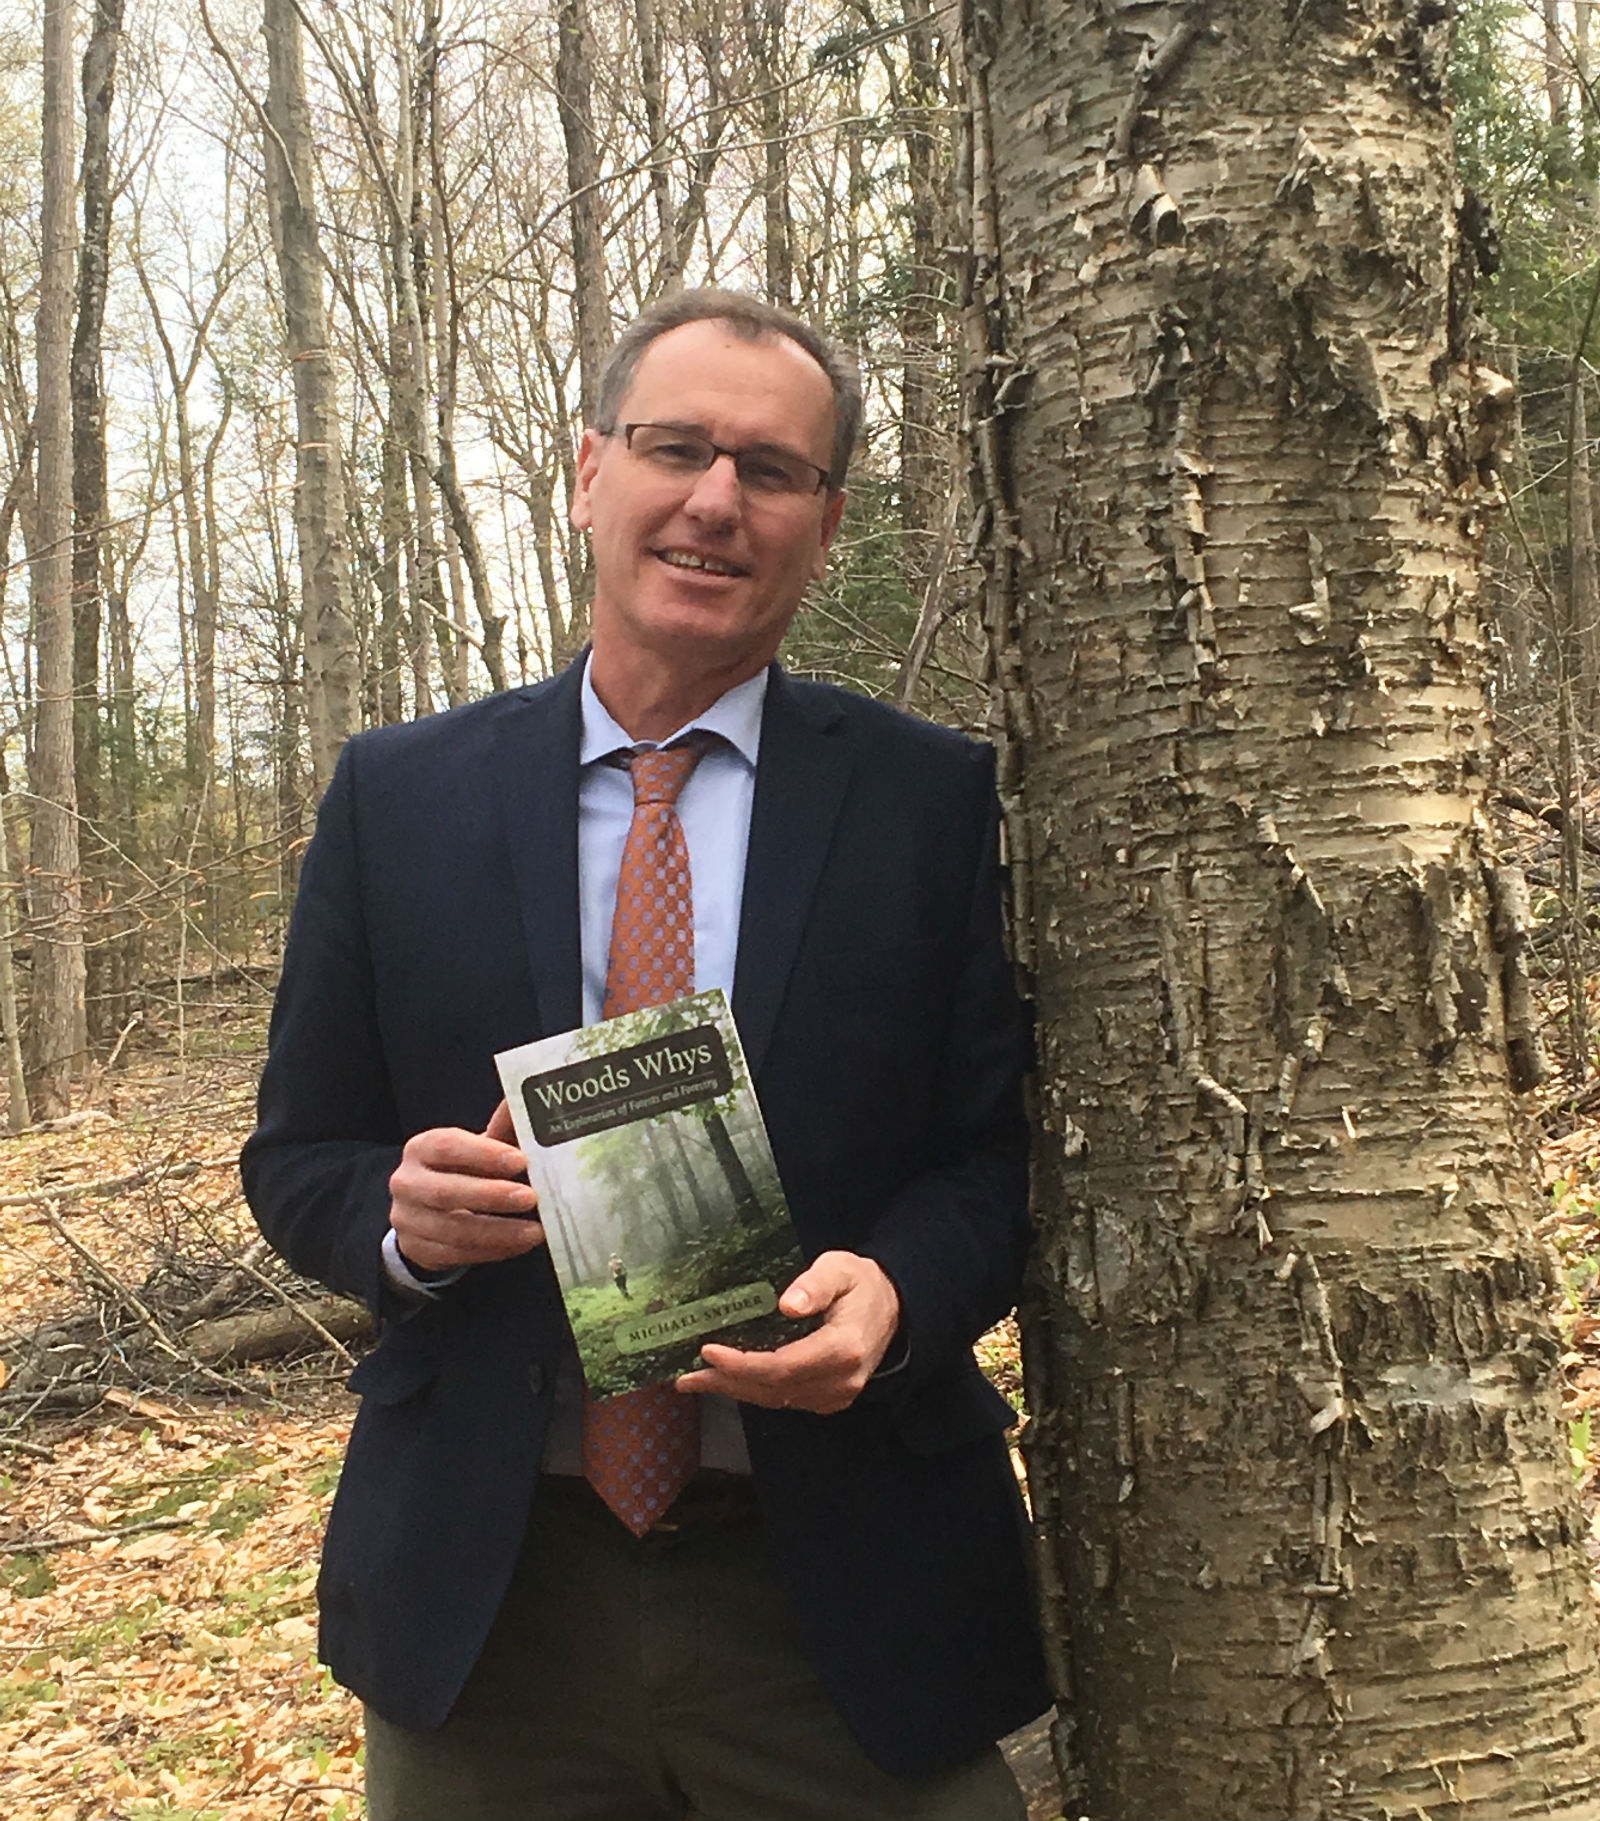 Commissioner michael snyder holding copy of Woods Whys